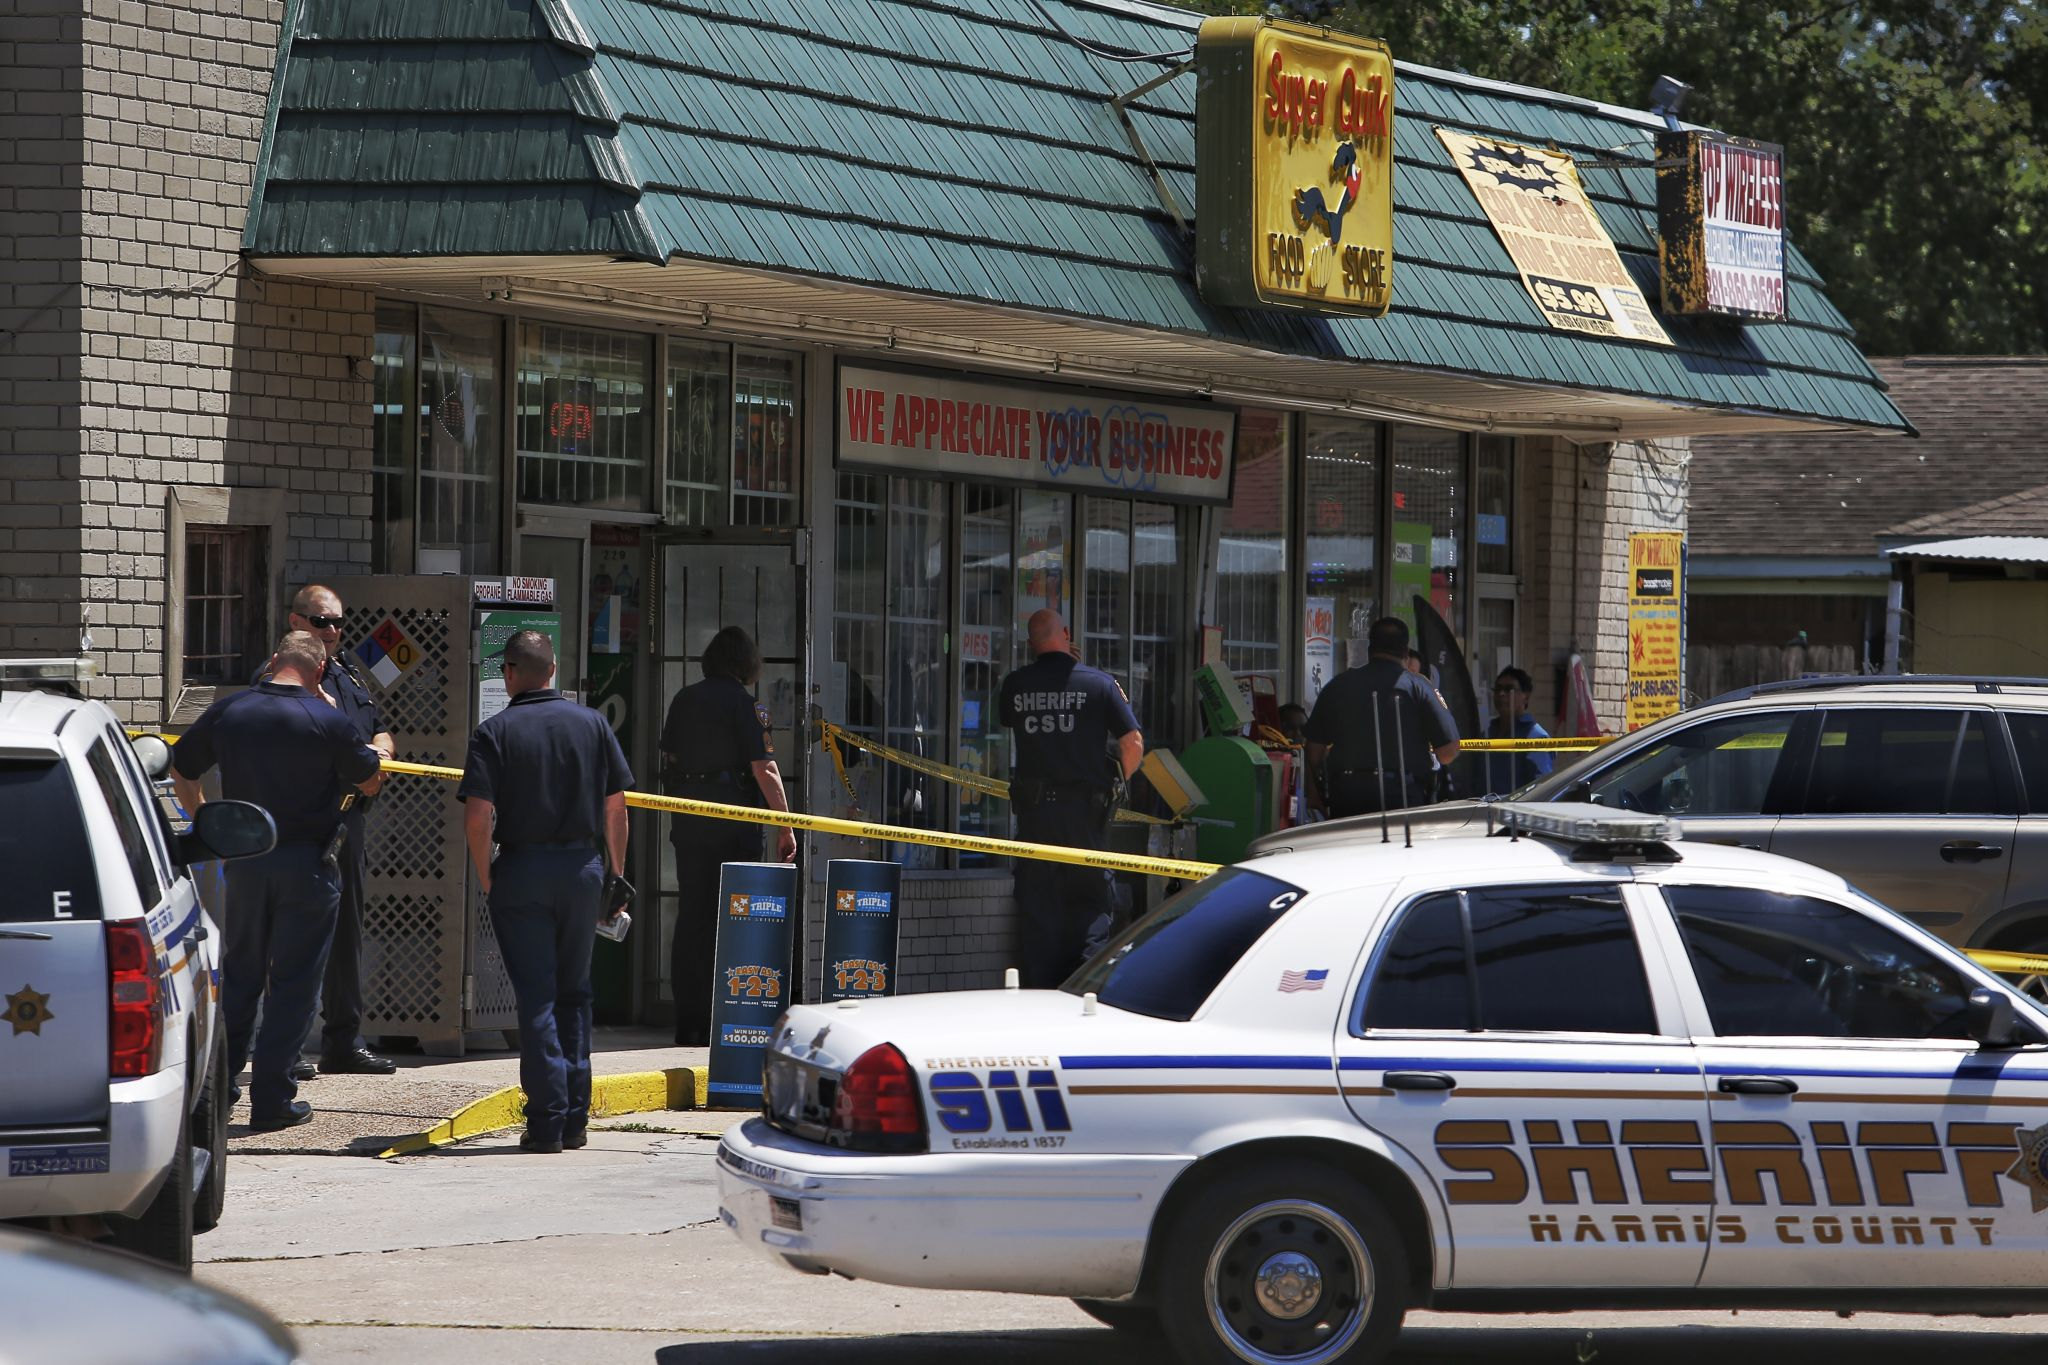 One Person Shot During Store Robbery In East Harris County